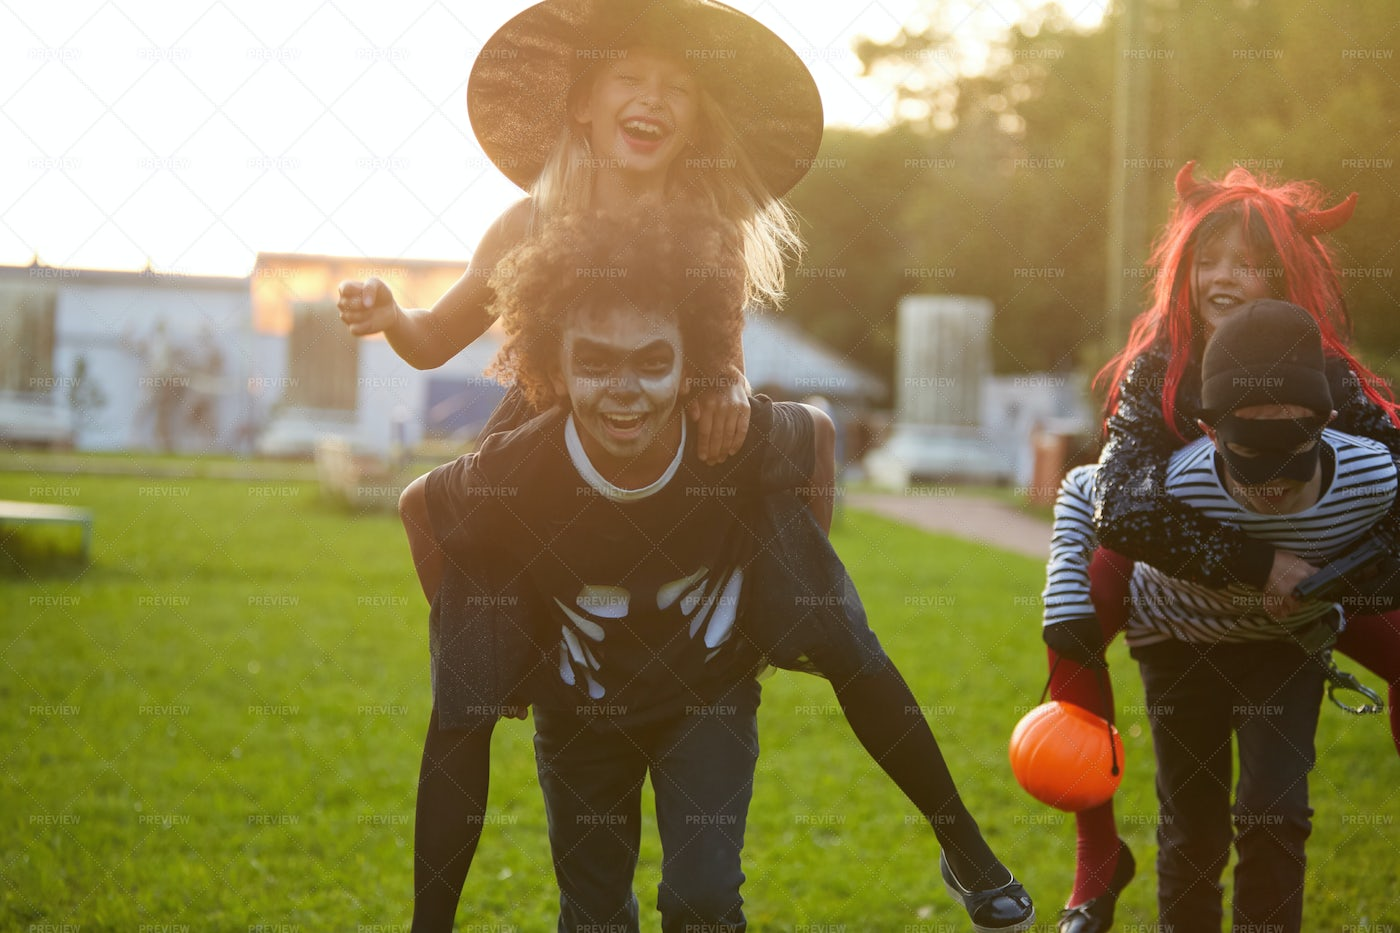 Kids Playing Outdoors On Halloween: Stock Photos